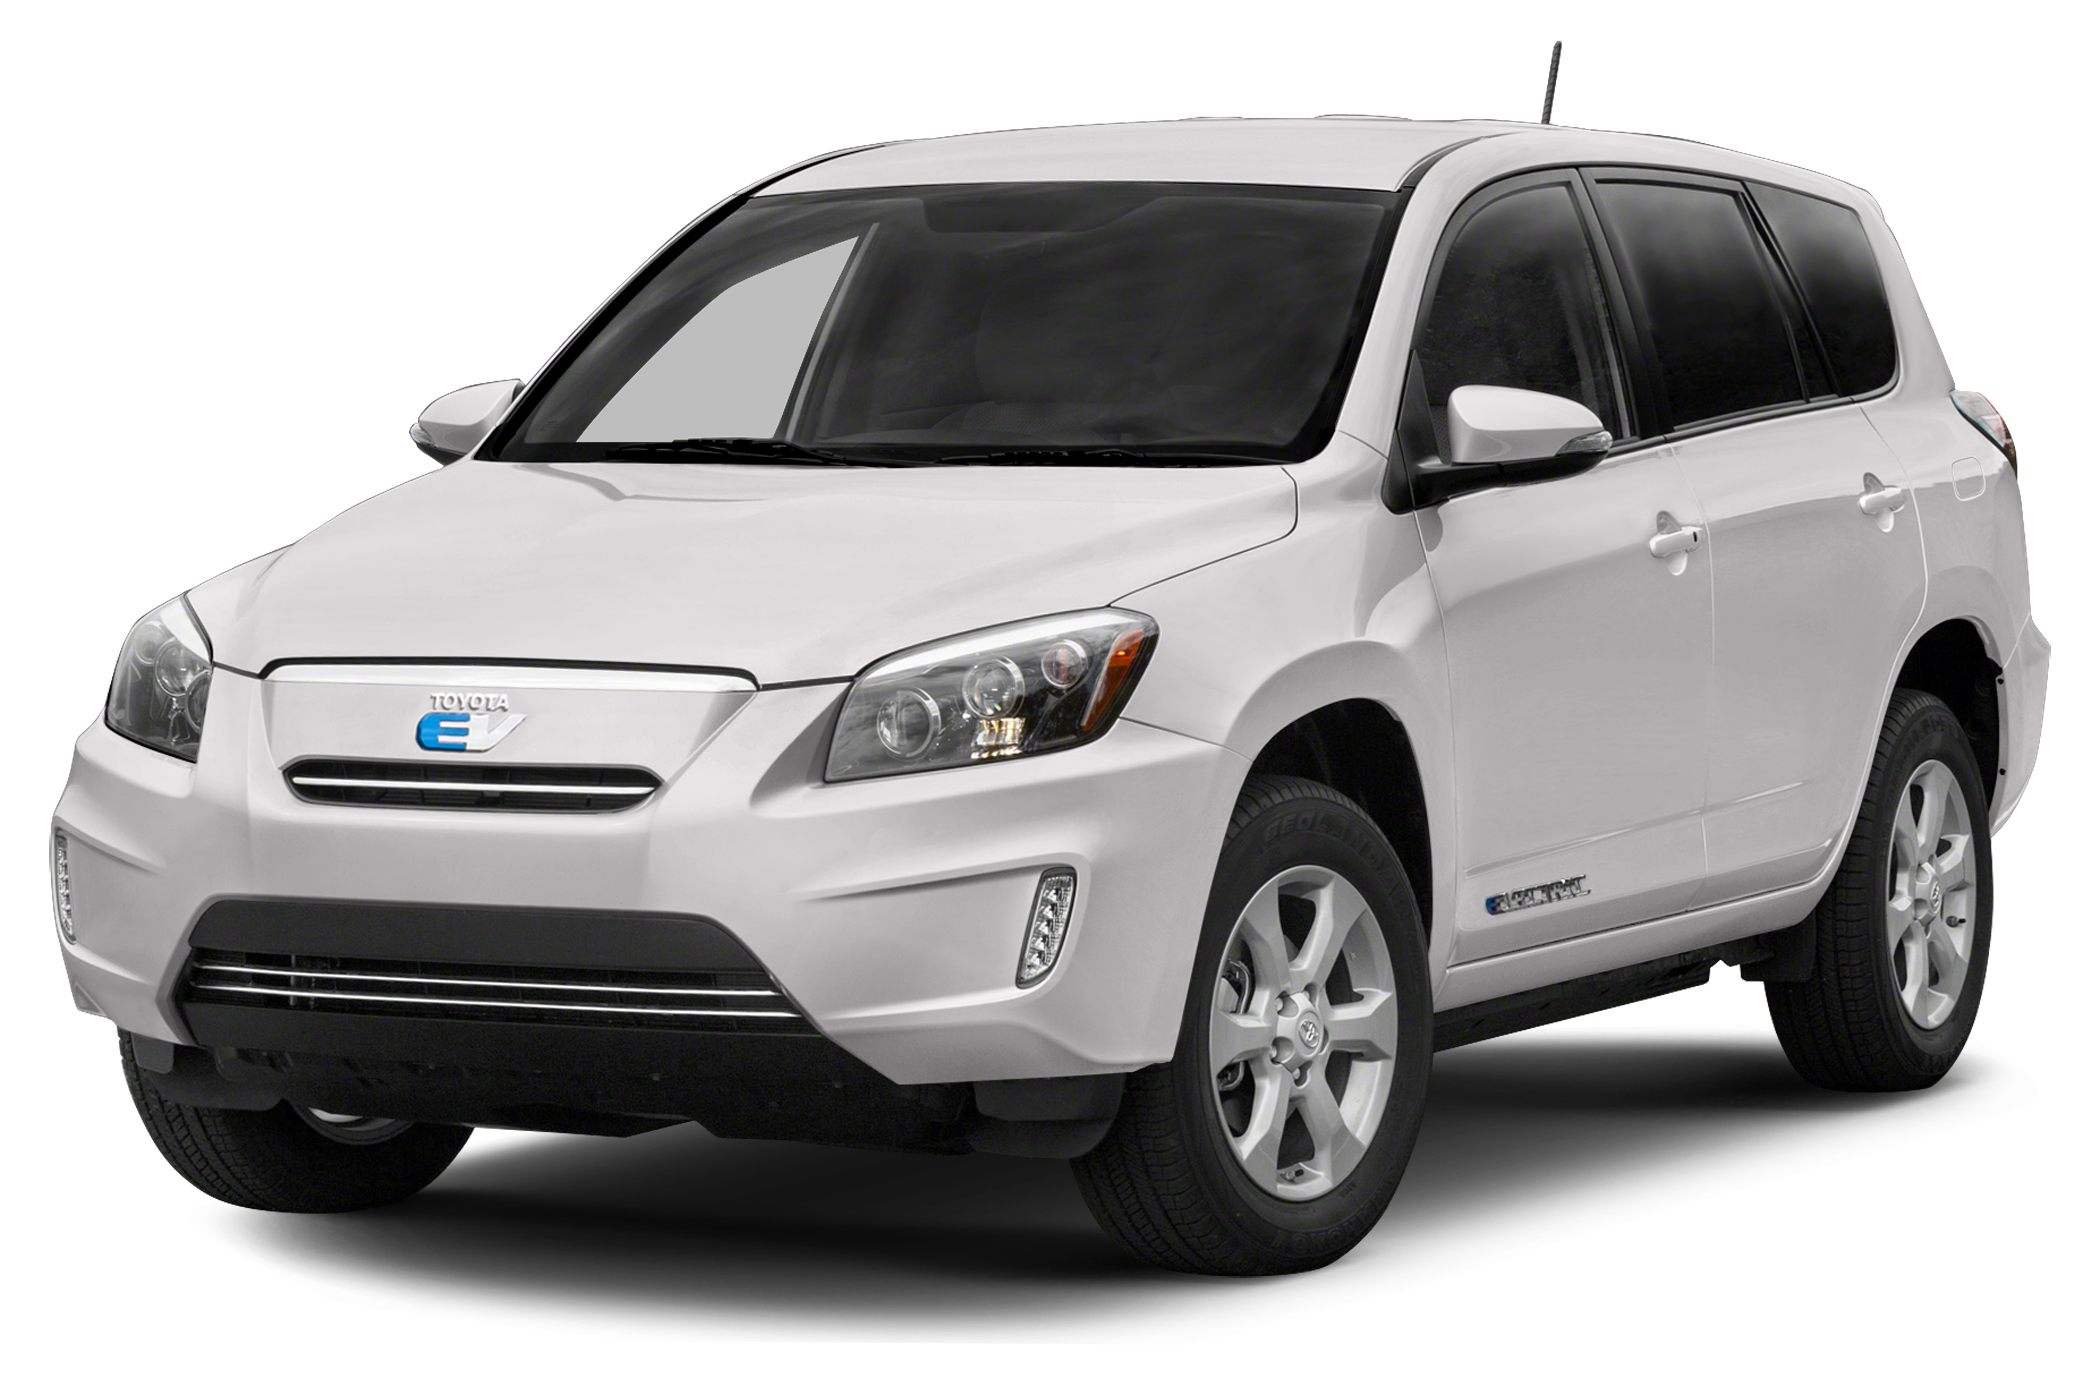 2012 Toyota RAV4 EV